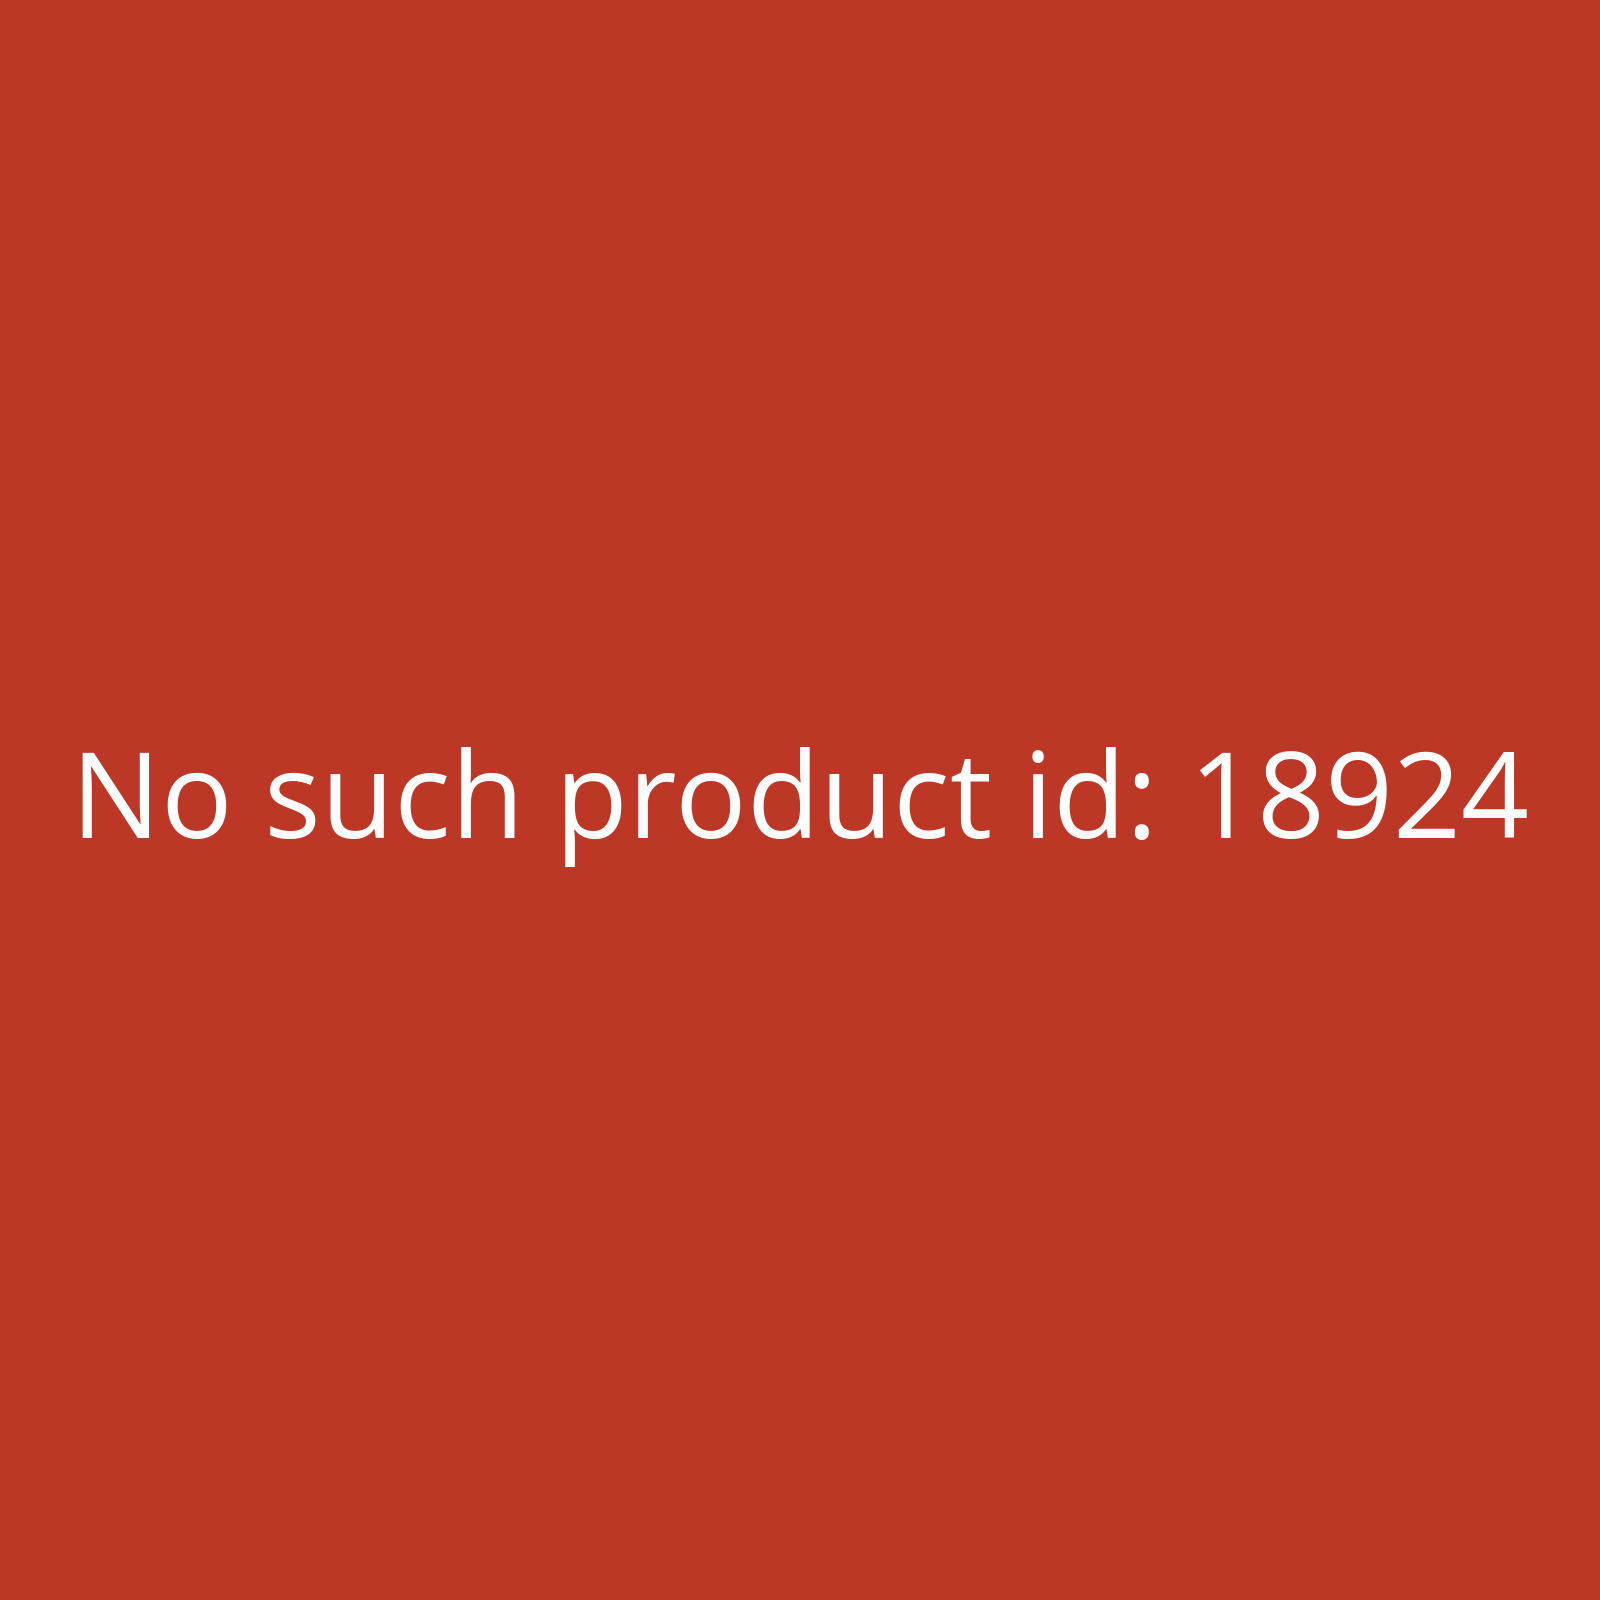 Back to Nature - Background Slim Line Basalt/Gneiss